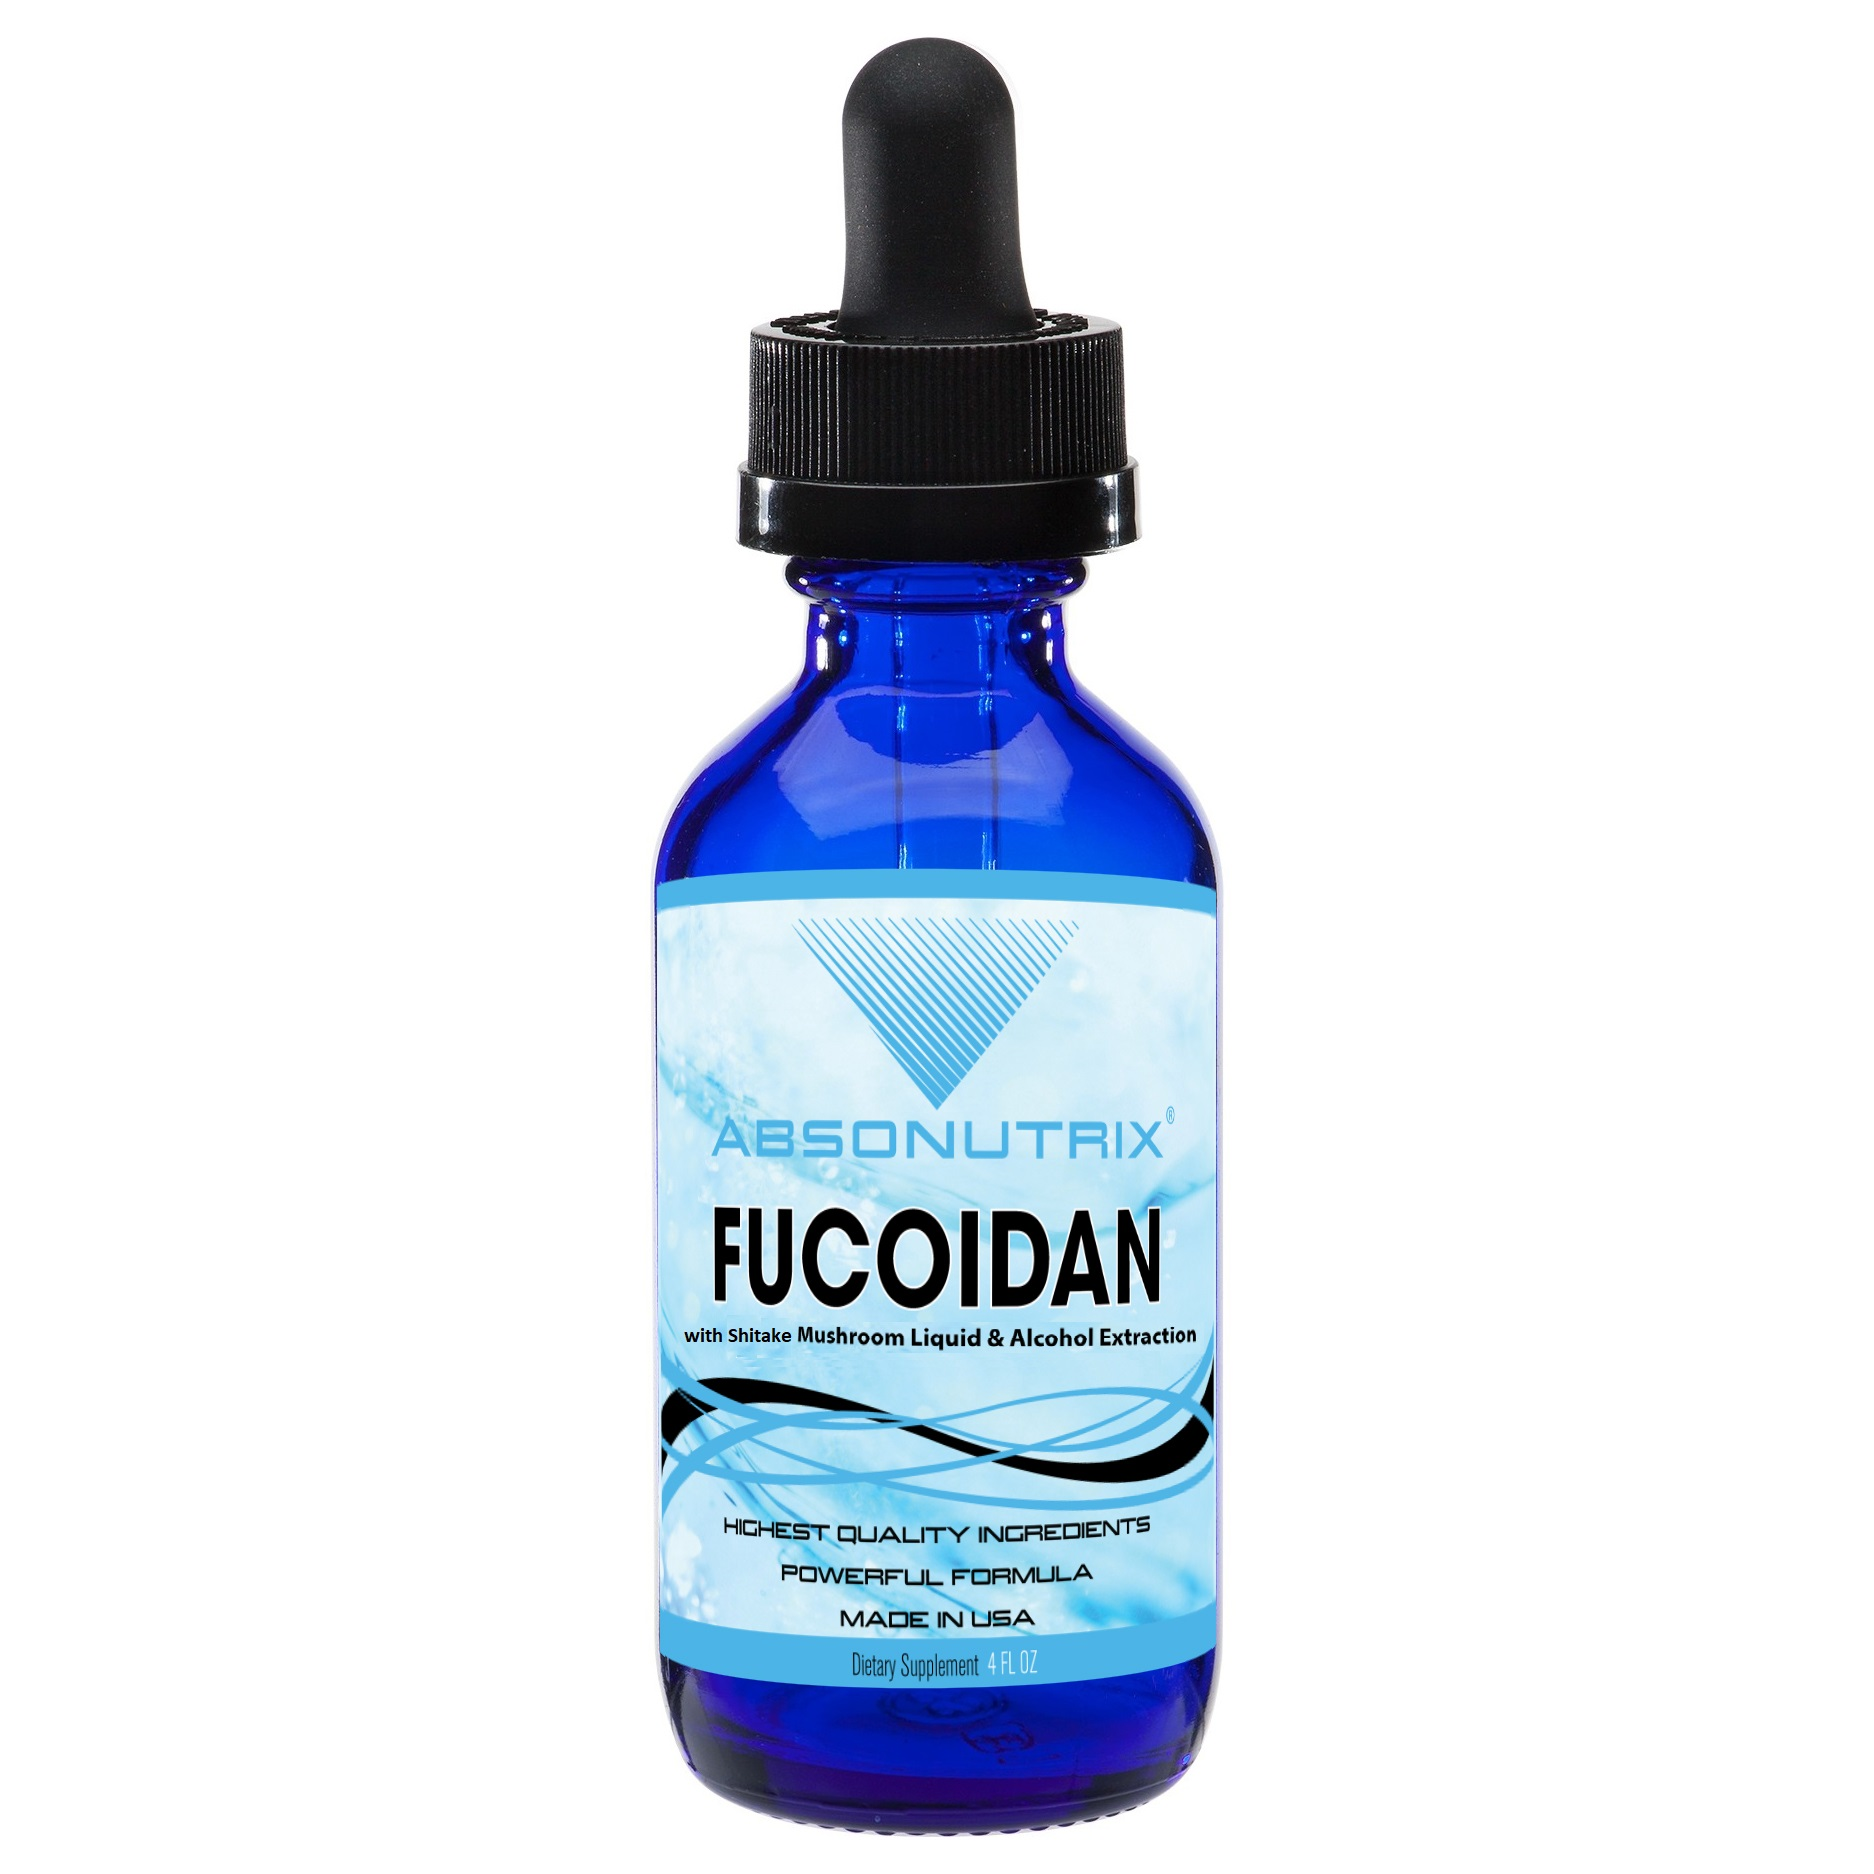 Absonutrix Fucoidan with Shitake Mushroom Liquid 500 mg helps immune response